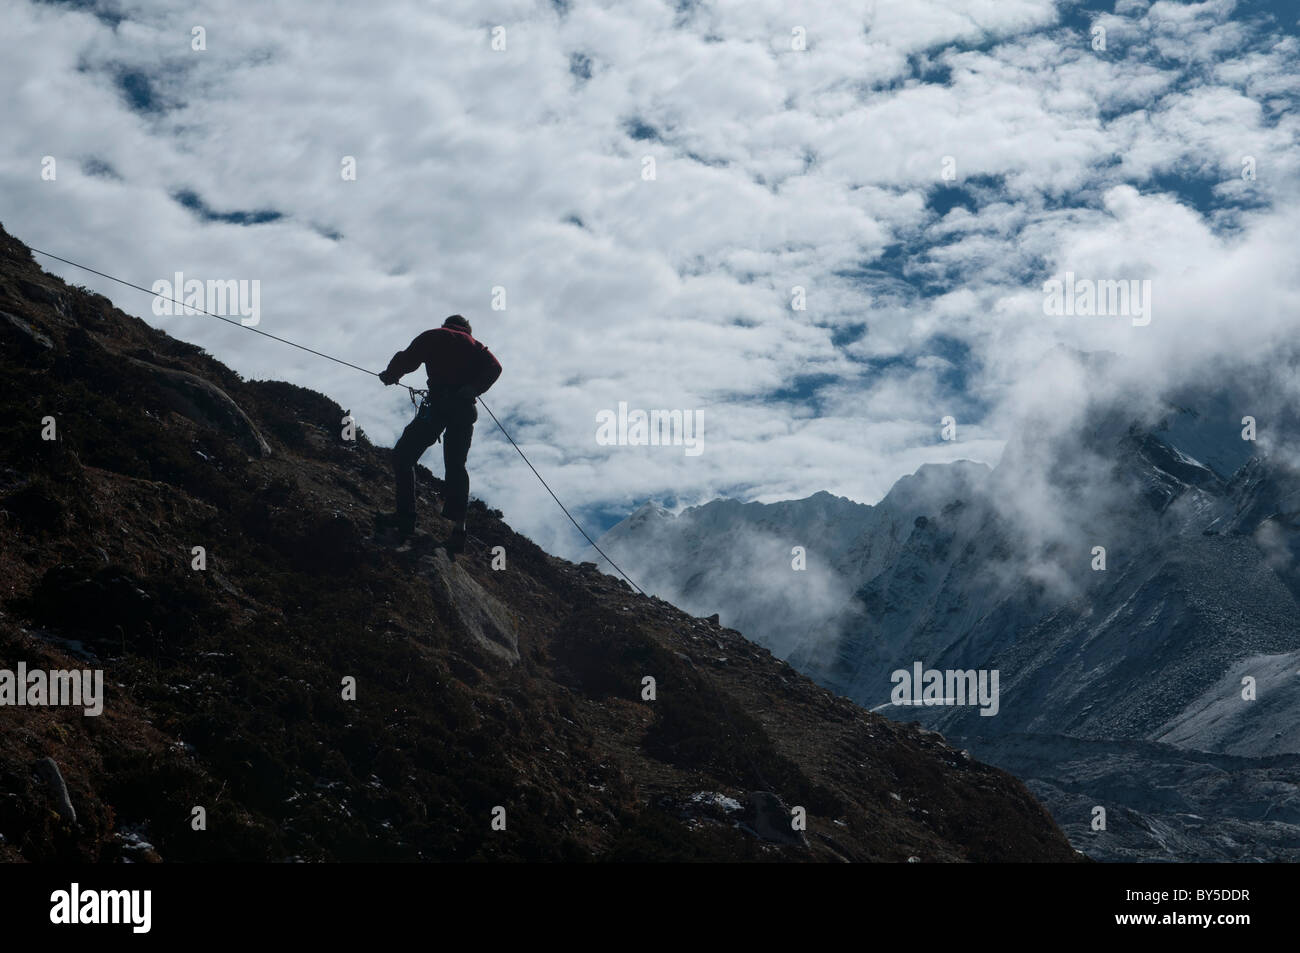 climber abseiling in the Everest Region of Nepal - Stock Image